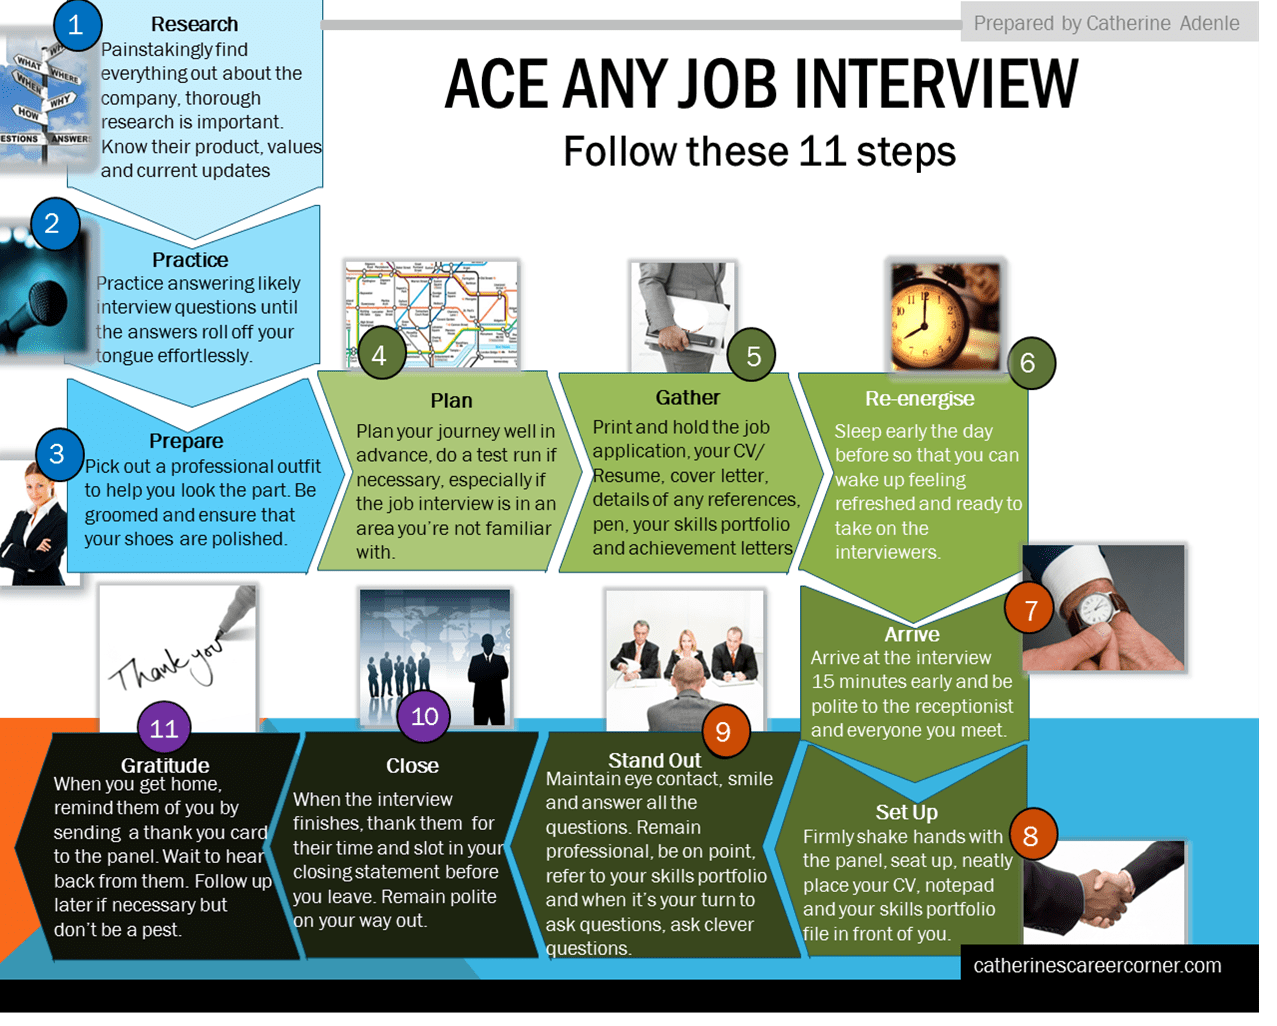 job interview explore 35 most popular job interview questions knowing the questions that the interviewer is likely to ask is important but knowing why they are asking and how to answer will help you to ace your job